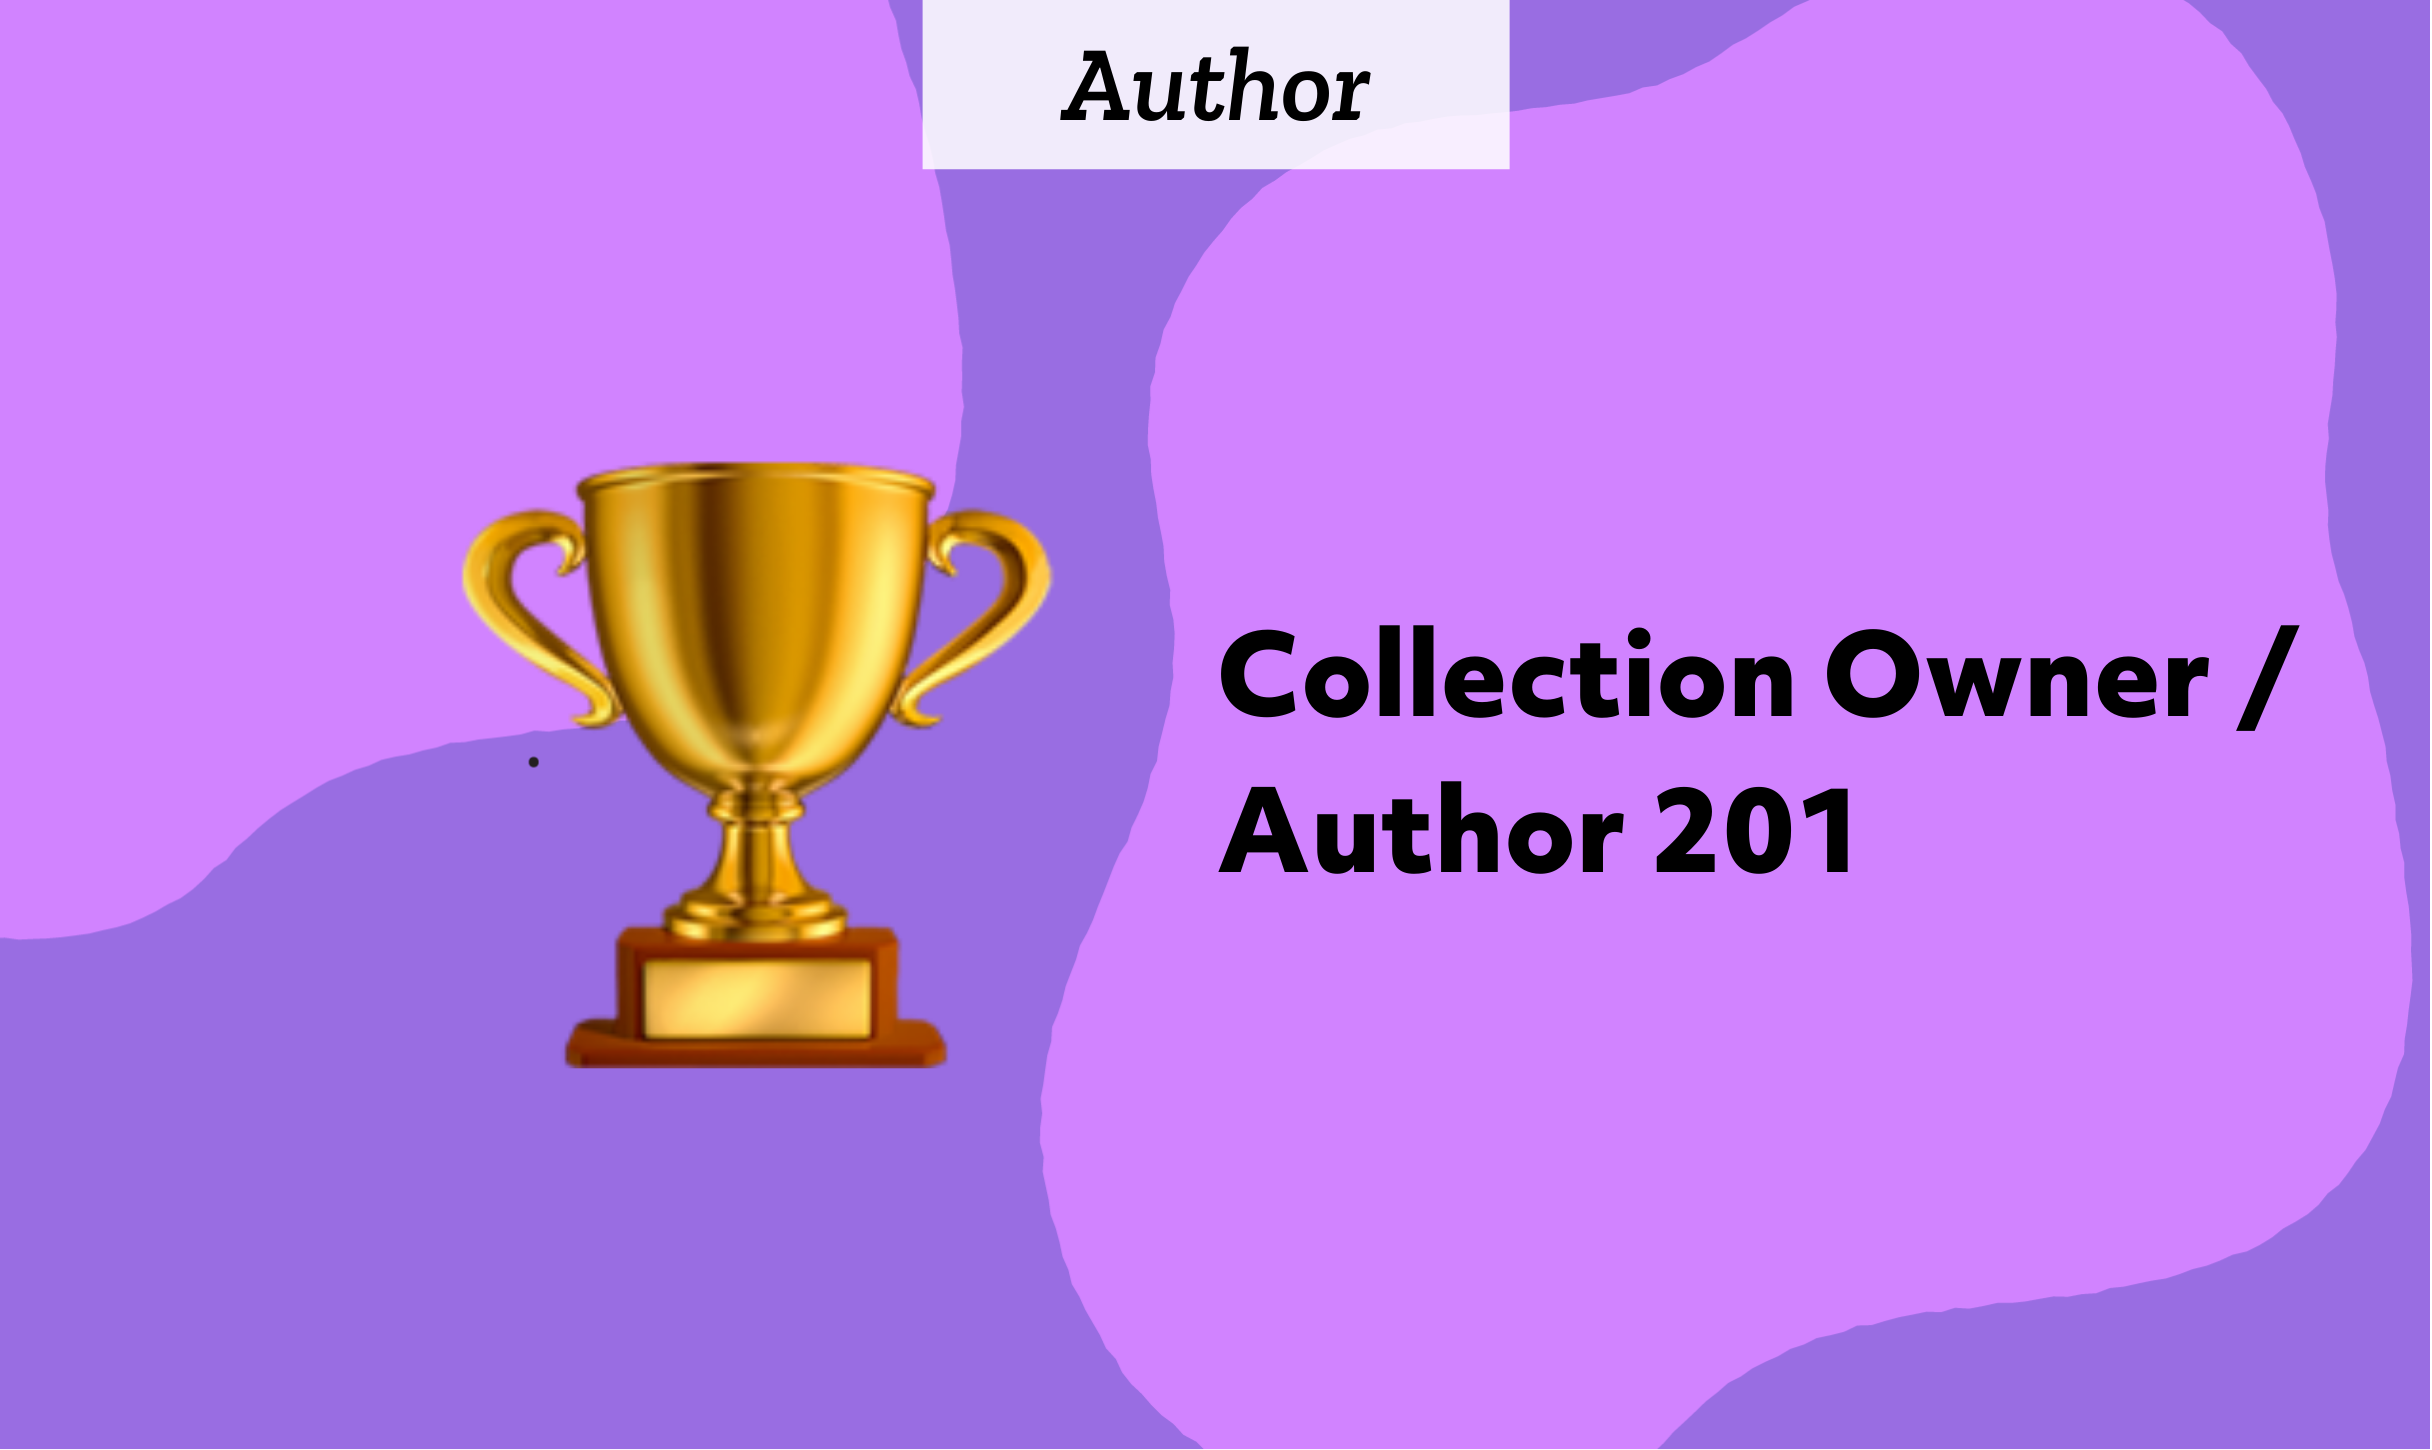 Collection Owner / Author 201